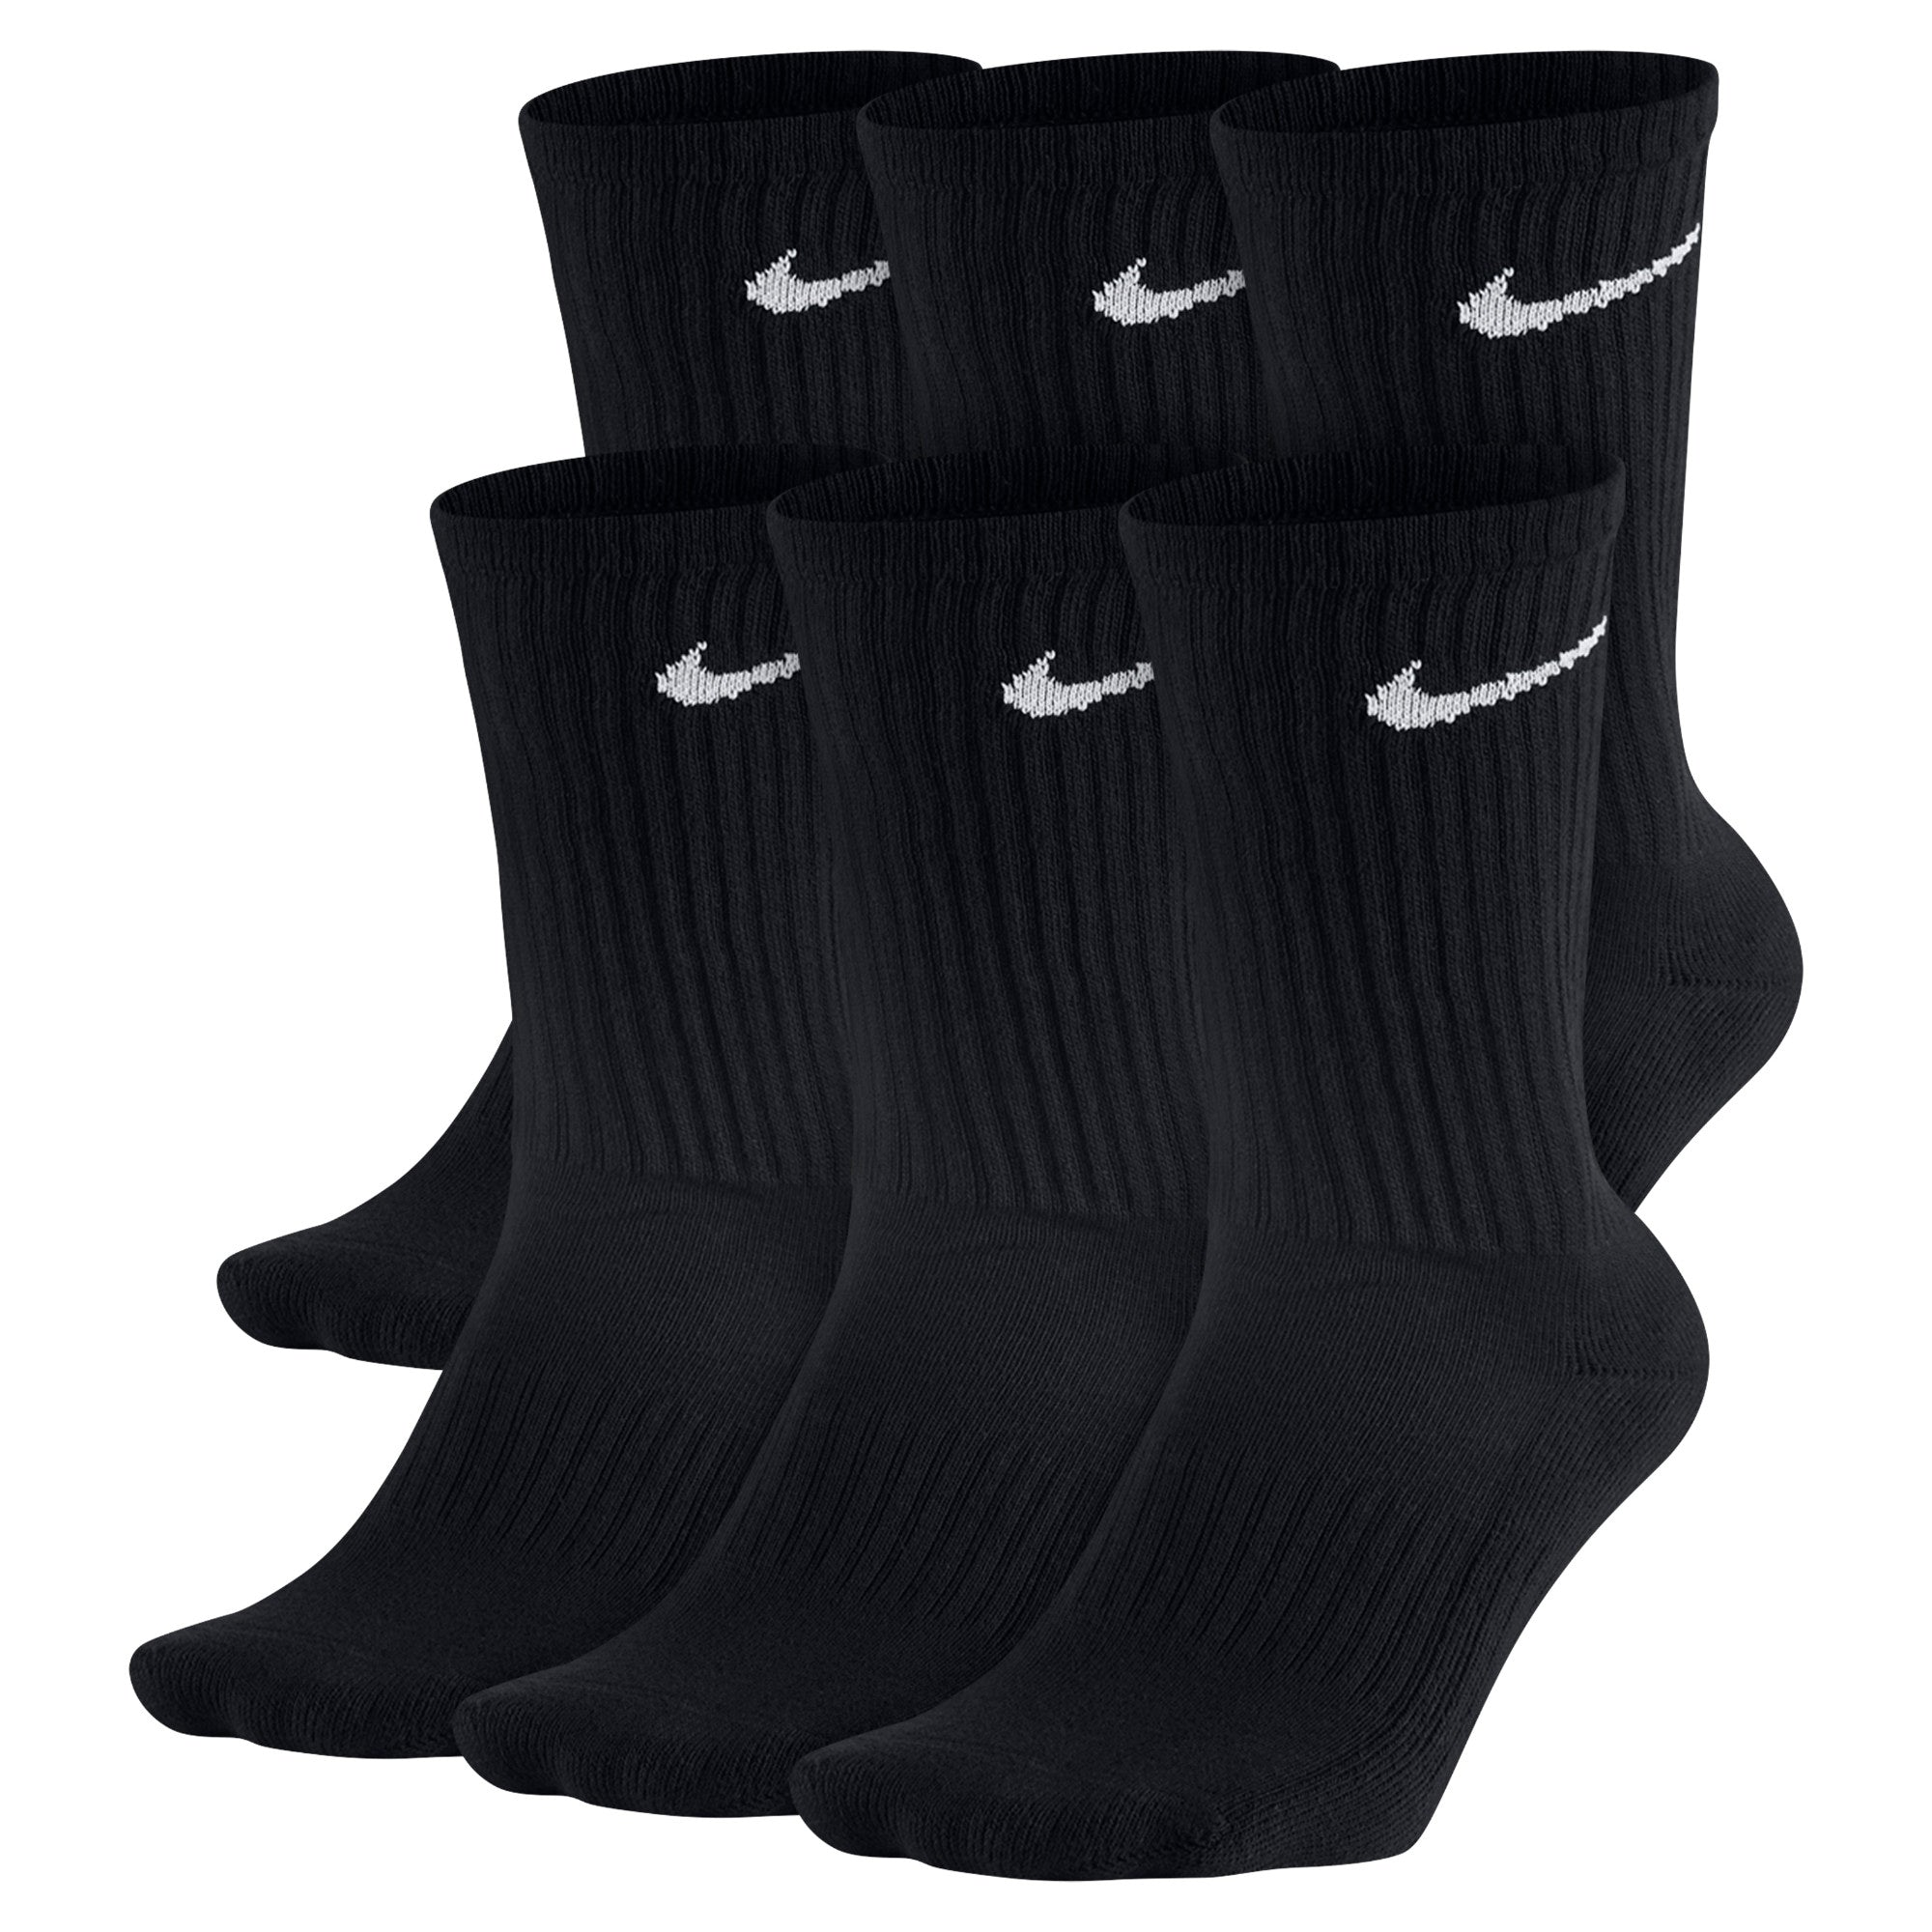 Nike Unisex Performance Cushioned Crew Socks (6 pair pack)  NK-SX5171-010